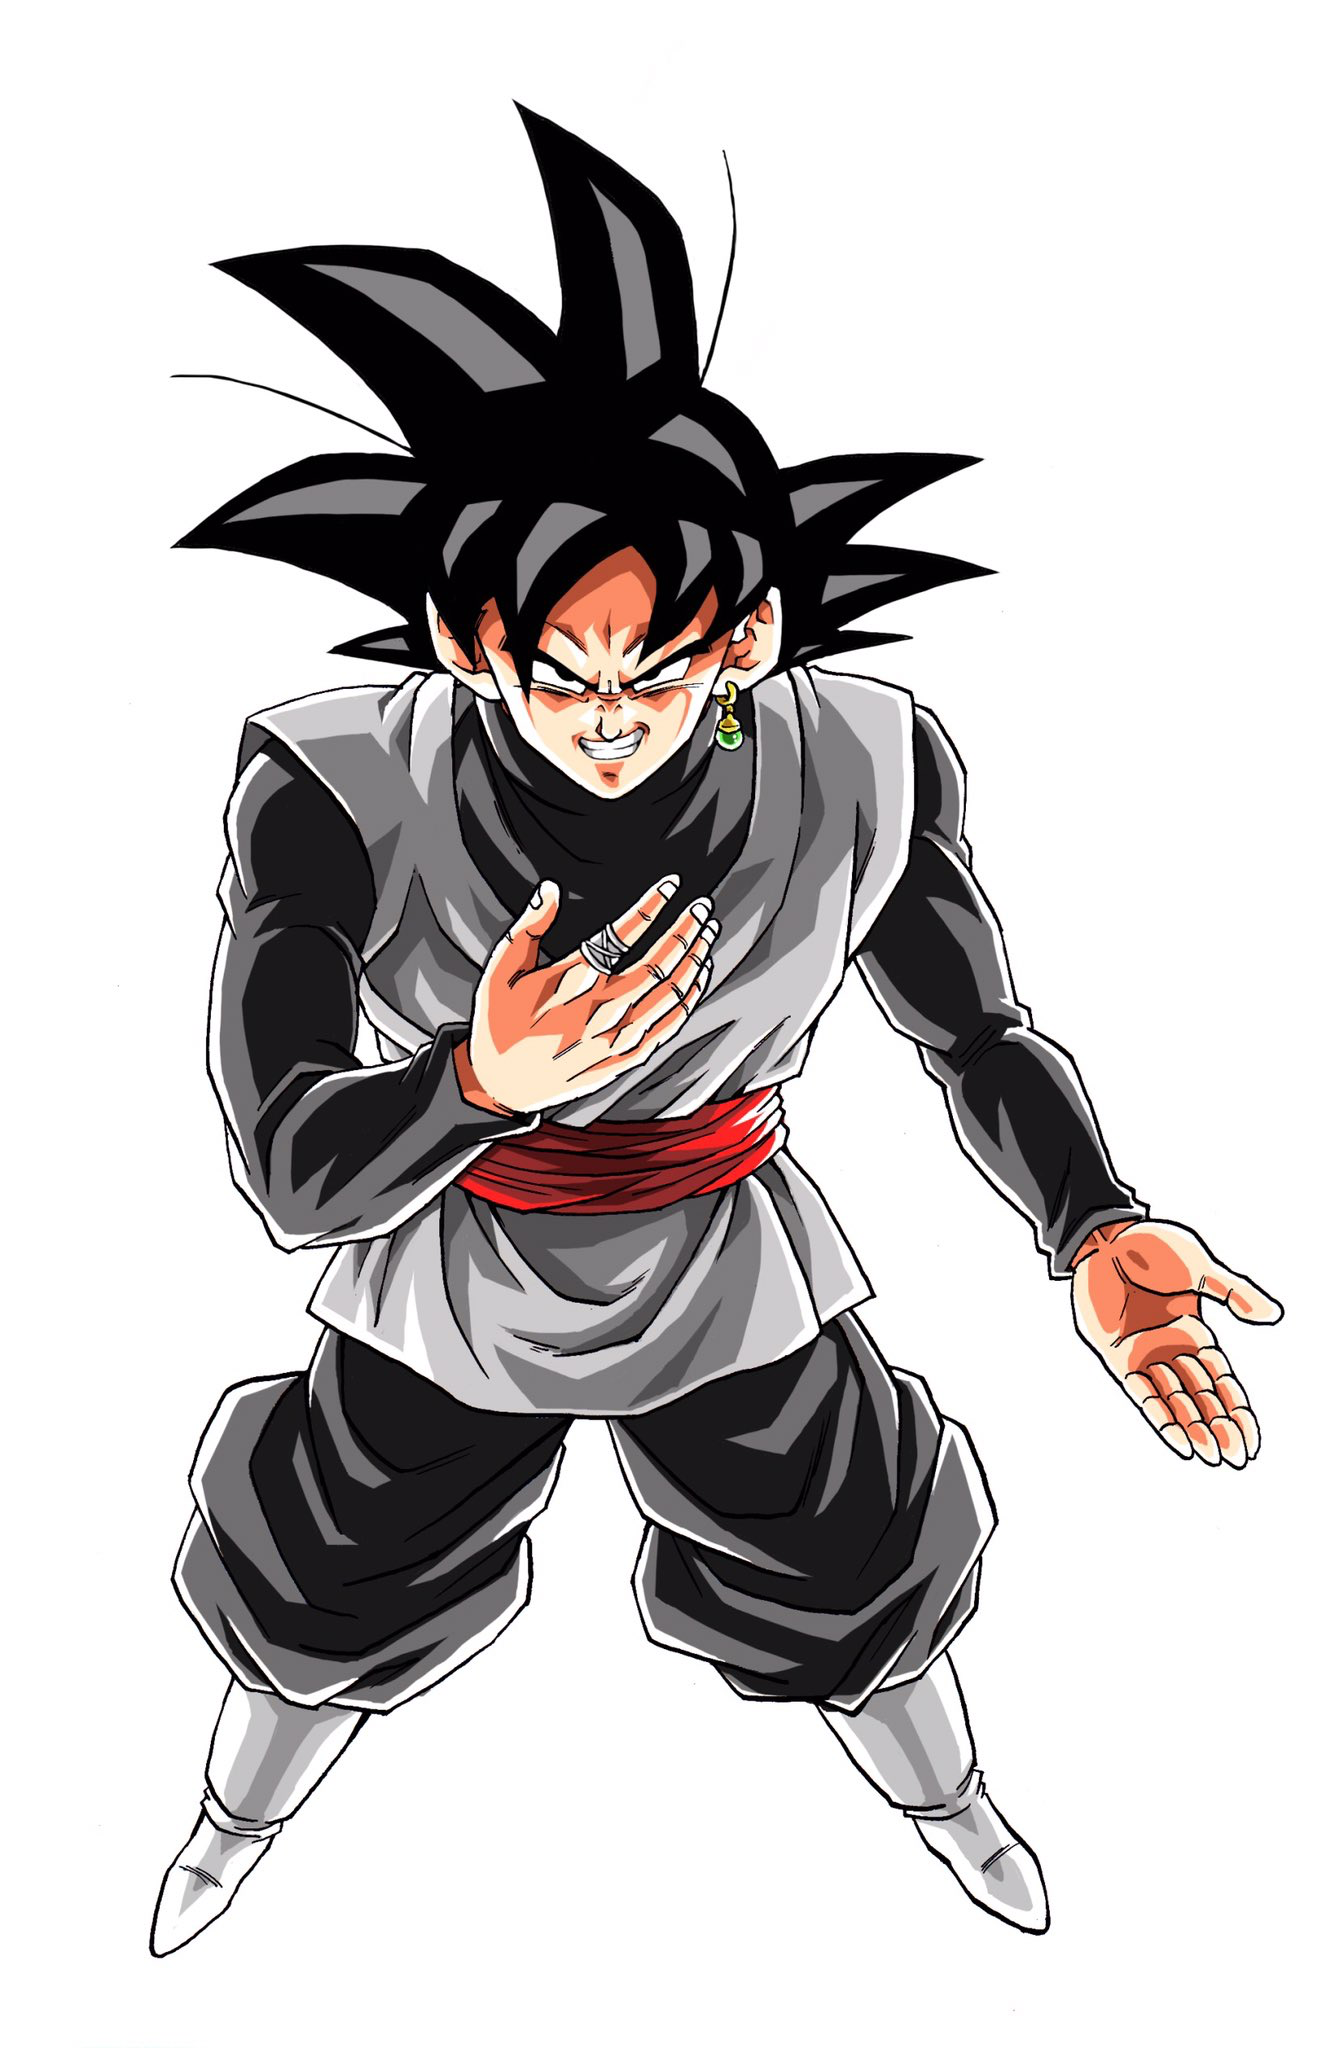 Get Most Downloaded Goku Black Wallpaper Iphone for iPhone 11 Pro Today